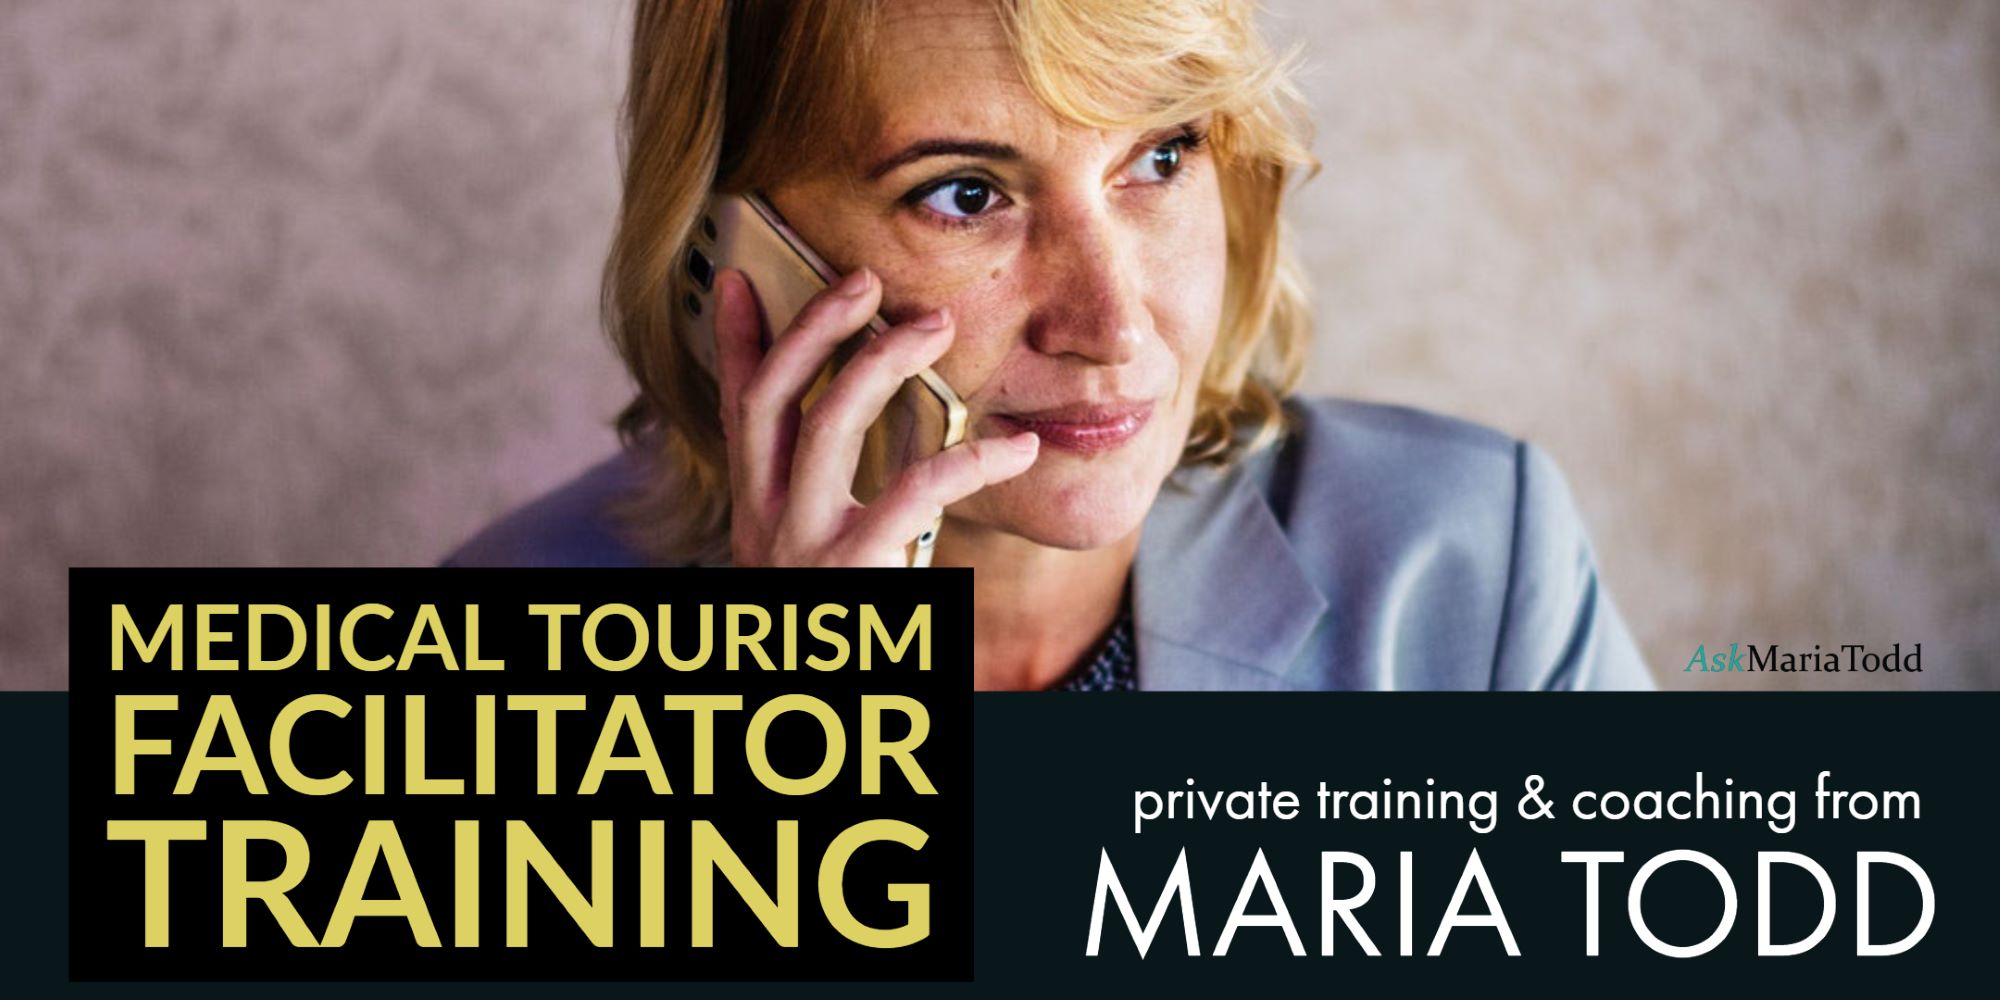 AskMariaTodd medical tourism facilitator training and coaching